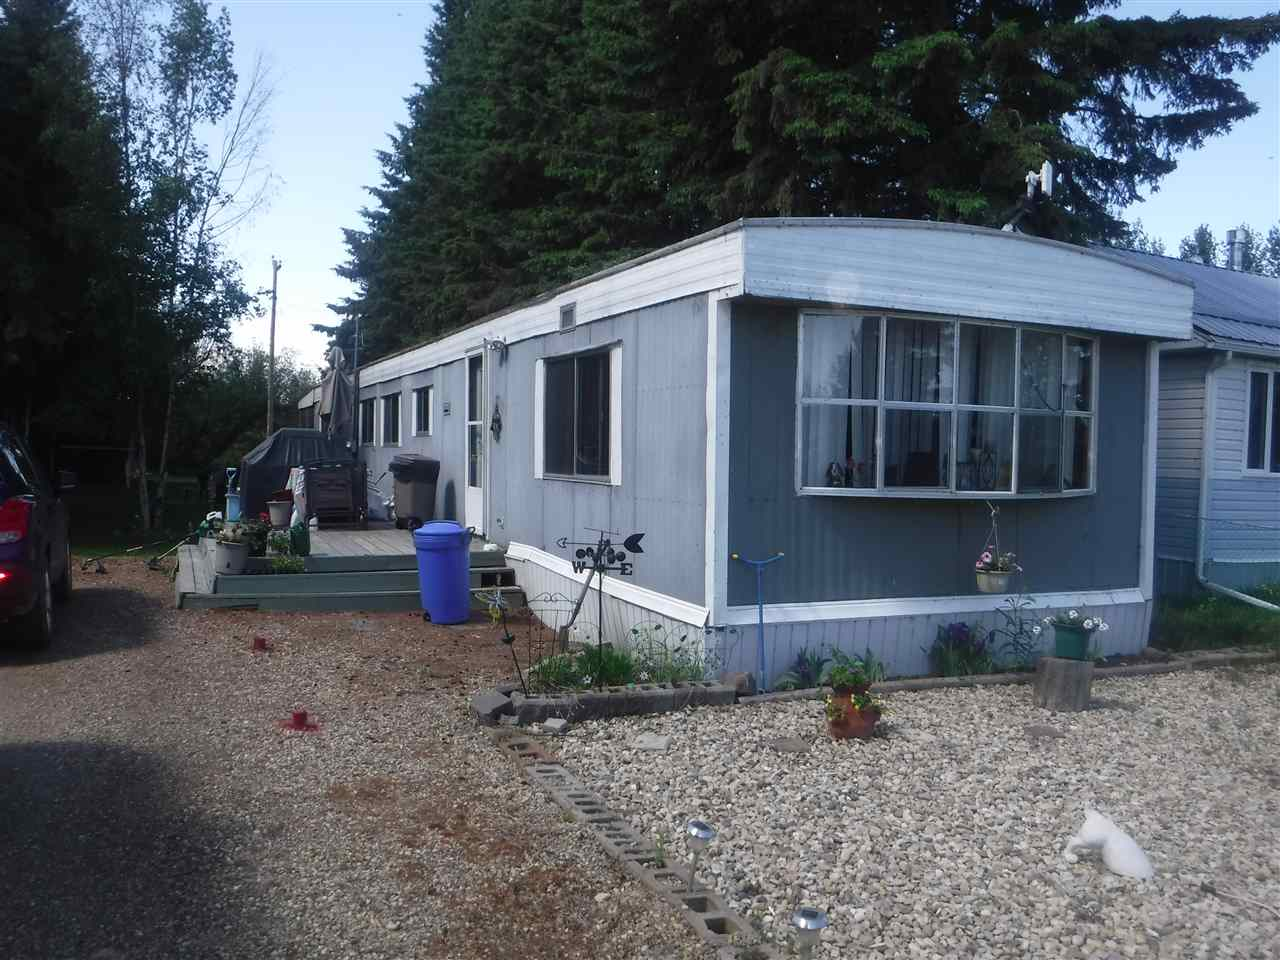 Looking for a Lake view? This quaint affordable home located across the street from the Lake in between both boat launches, offers you a great week-end get away or year round living. The 1978 14x68 mobile has 3 bedrooms and 1 4pc. bath with a 10x14 built on sun room at the rear with access from the master bedroom. Holding Tank is approximately between 650-750 gal. Nicely treed yard with fire pit, and you will never have rear neighbors as the land backs onto the creek.